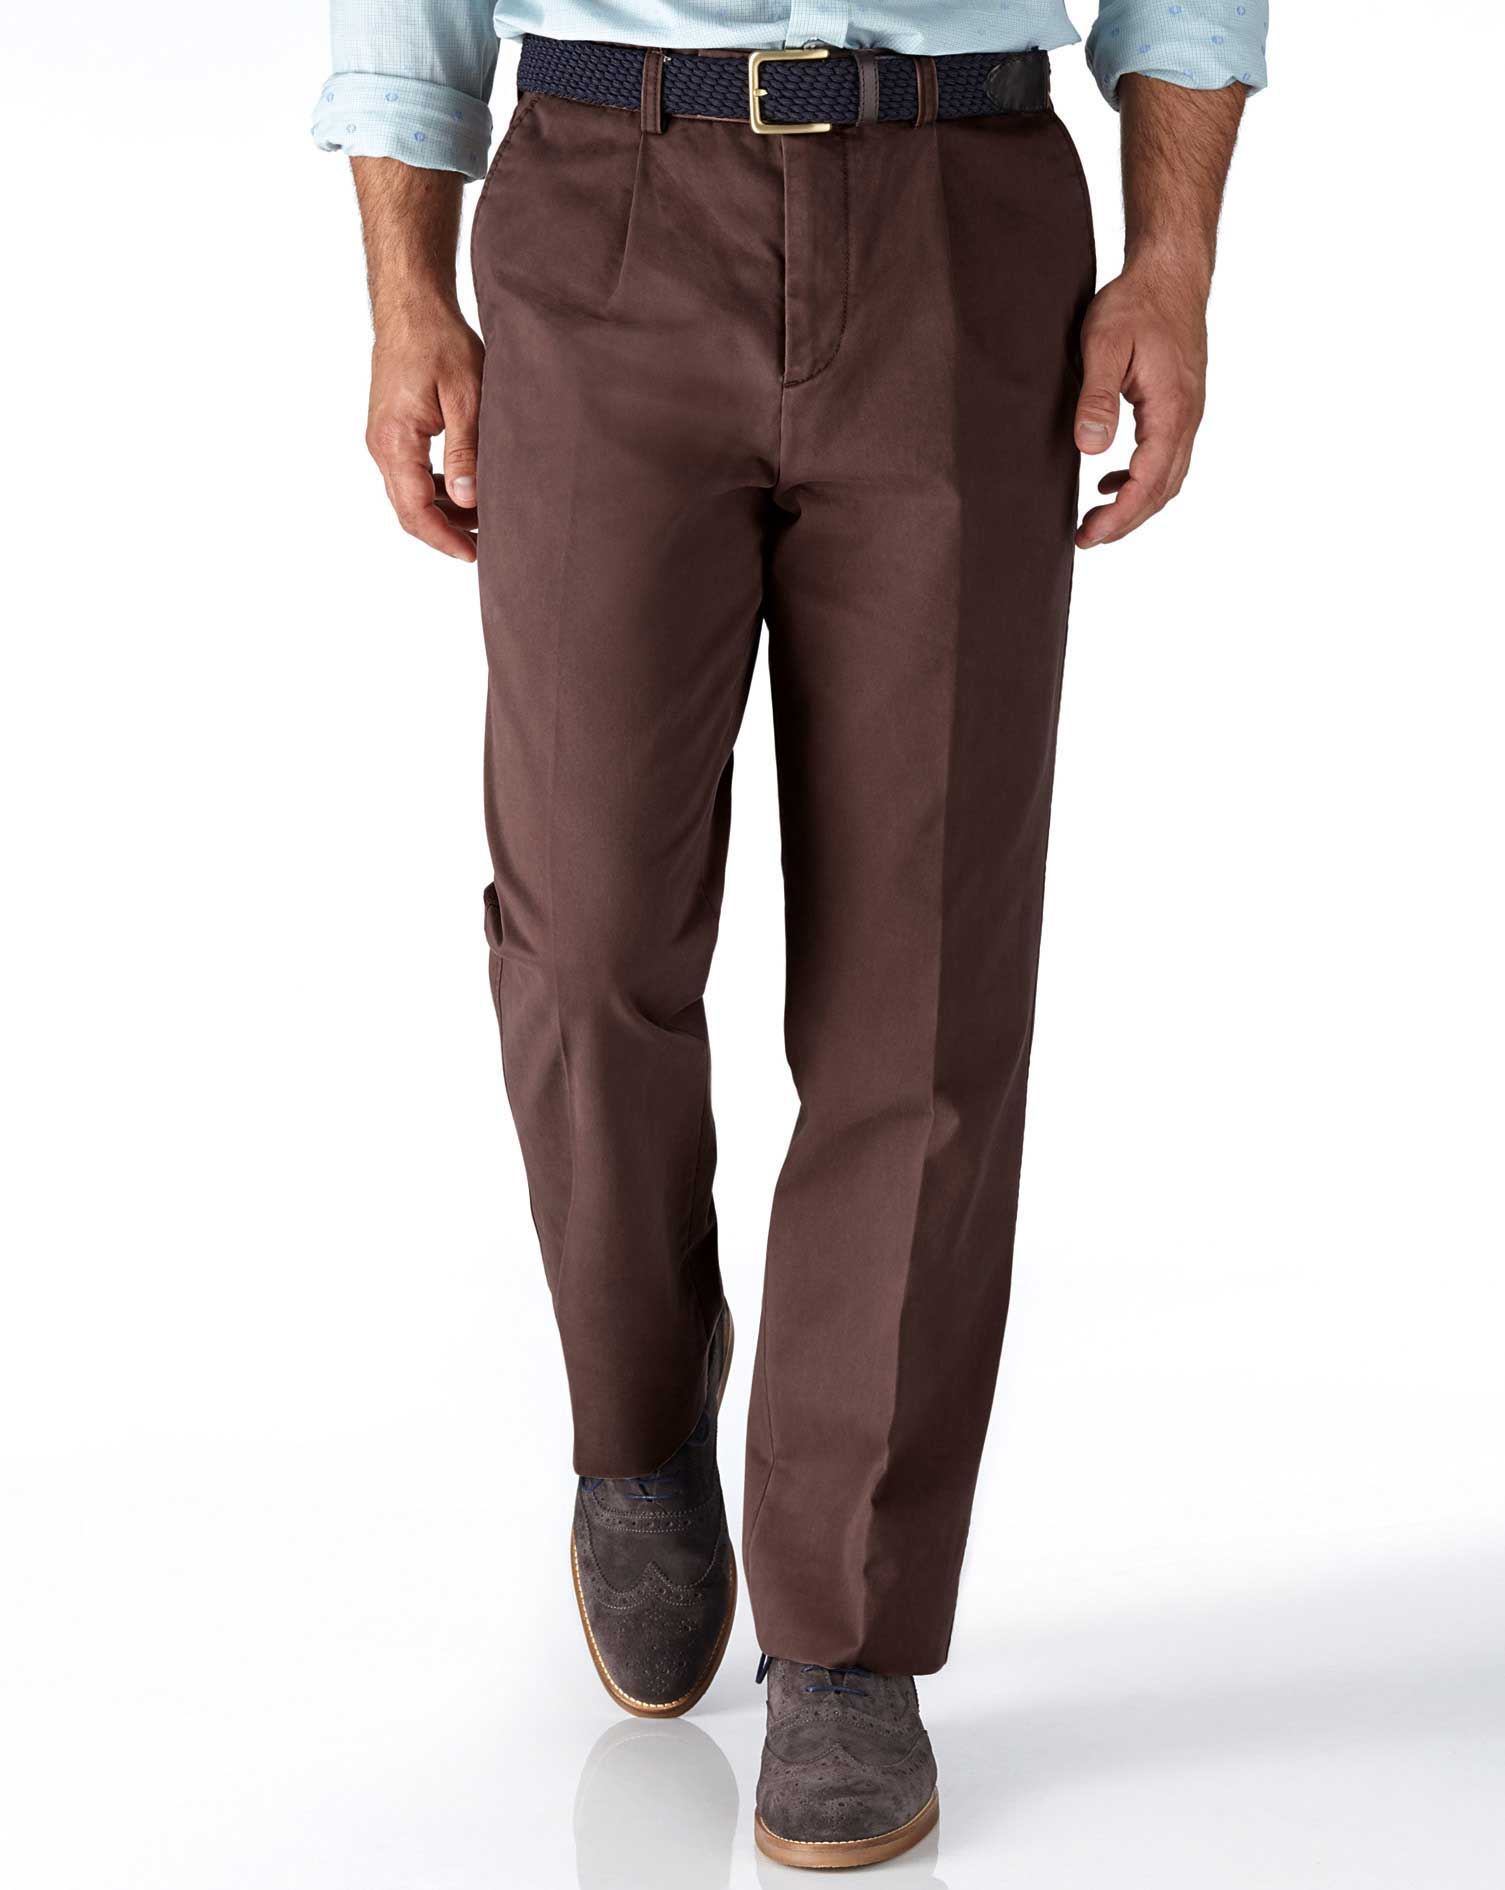 Brown Classic Fit Single Pleat Cotton Chino Trousers Size W44 L38 by Charles Tyrwhitt